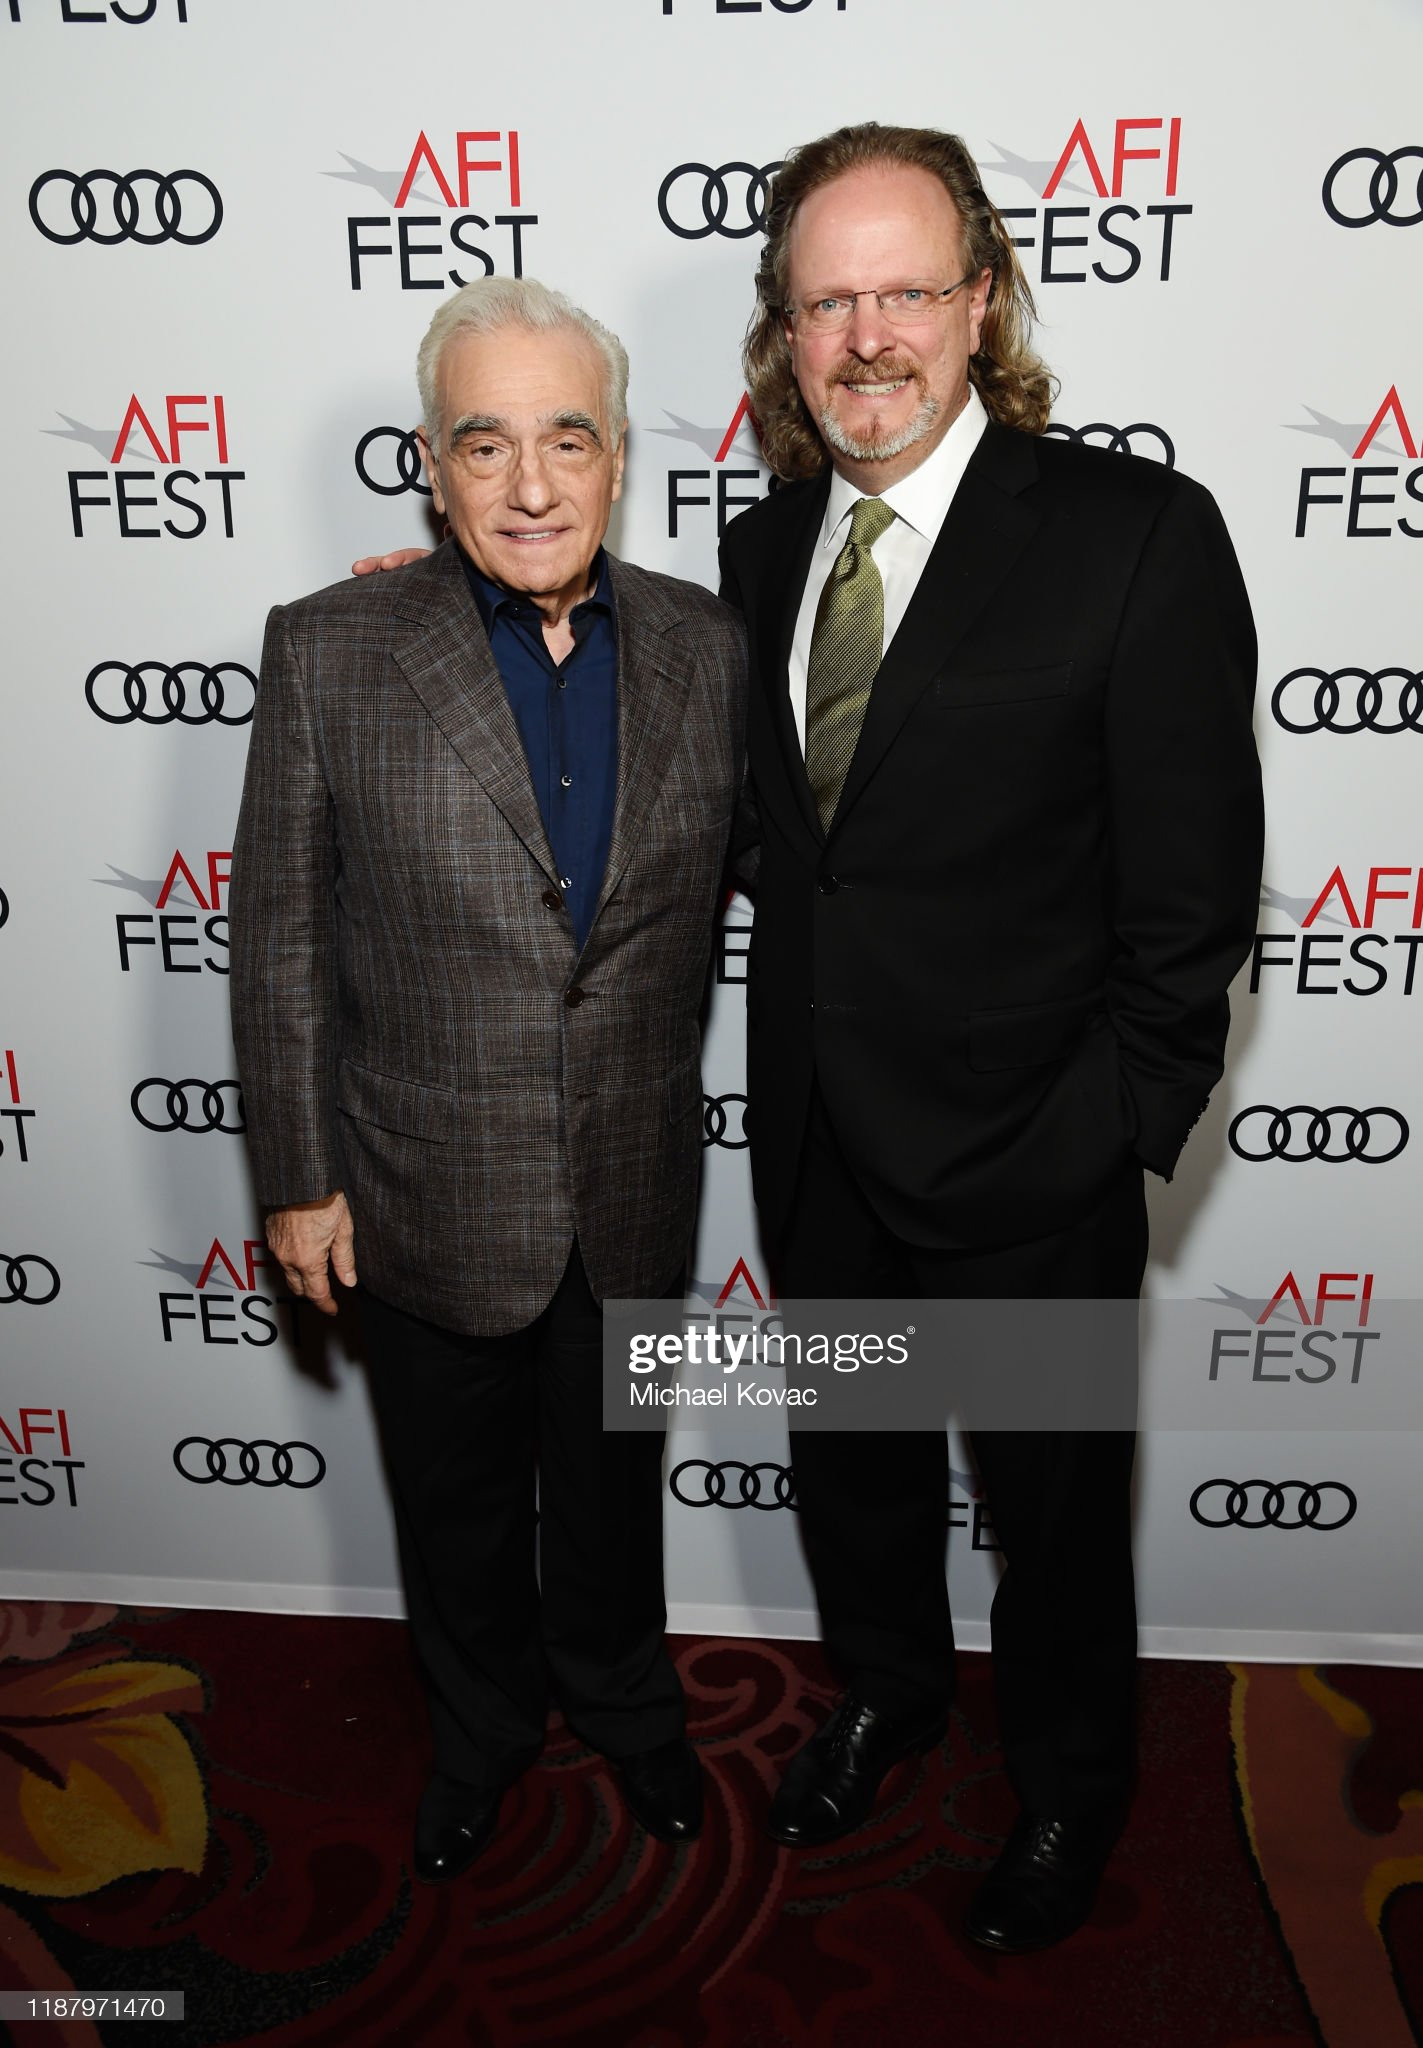 ¿Cuánto mide Clint Eastwood? - Altura - Real height - Página 2 Martin-scorsese-and-afi-president-bob-gazzale-attend-2019-afi-fest-picture-id1187971470?s=2048x2048